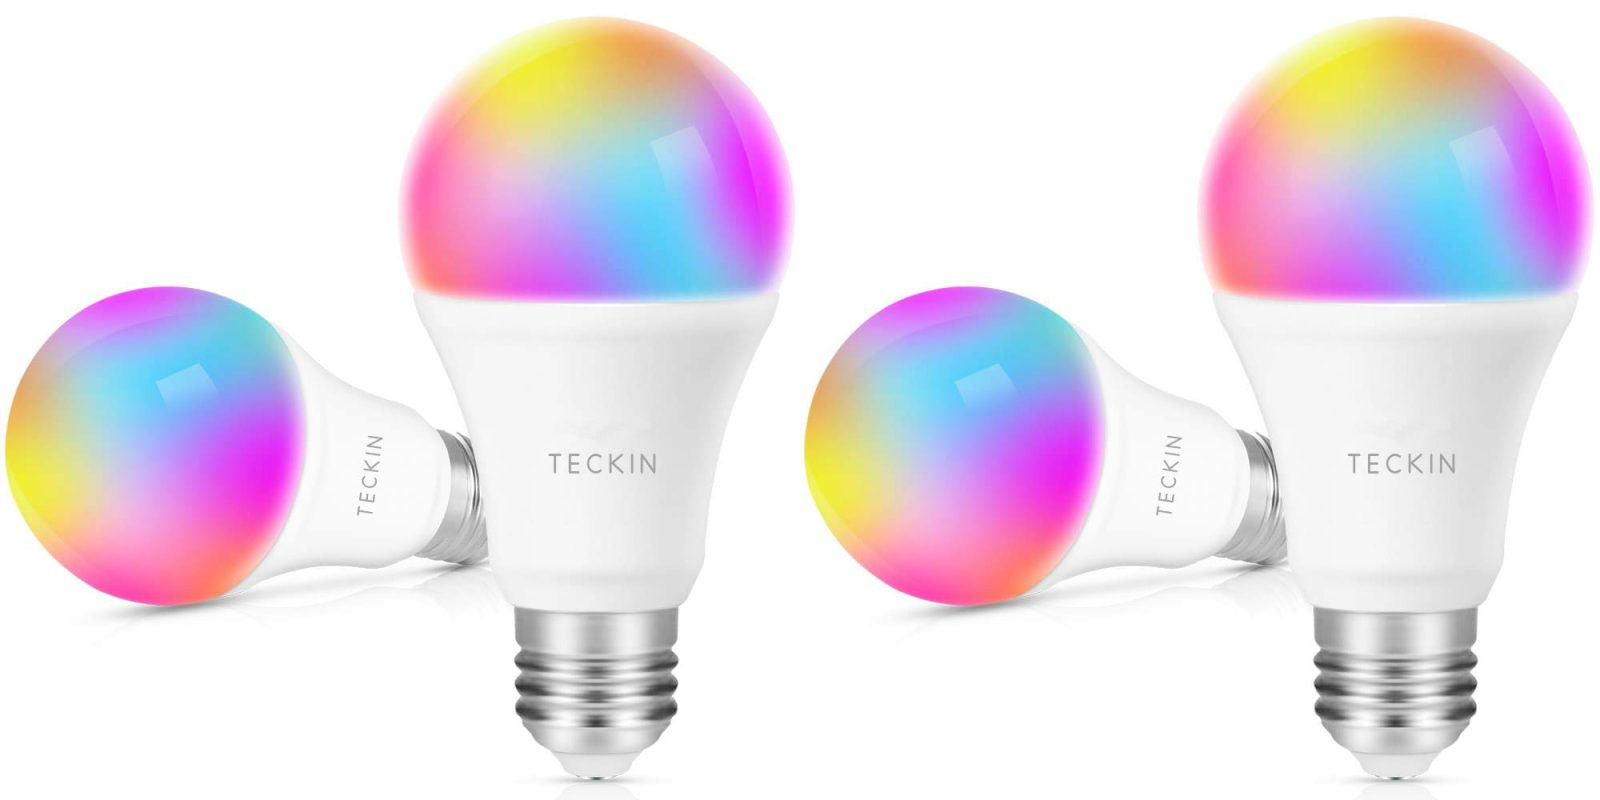 Add voice controlled RGB smart lighting to any room for less than $10 per bulb